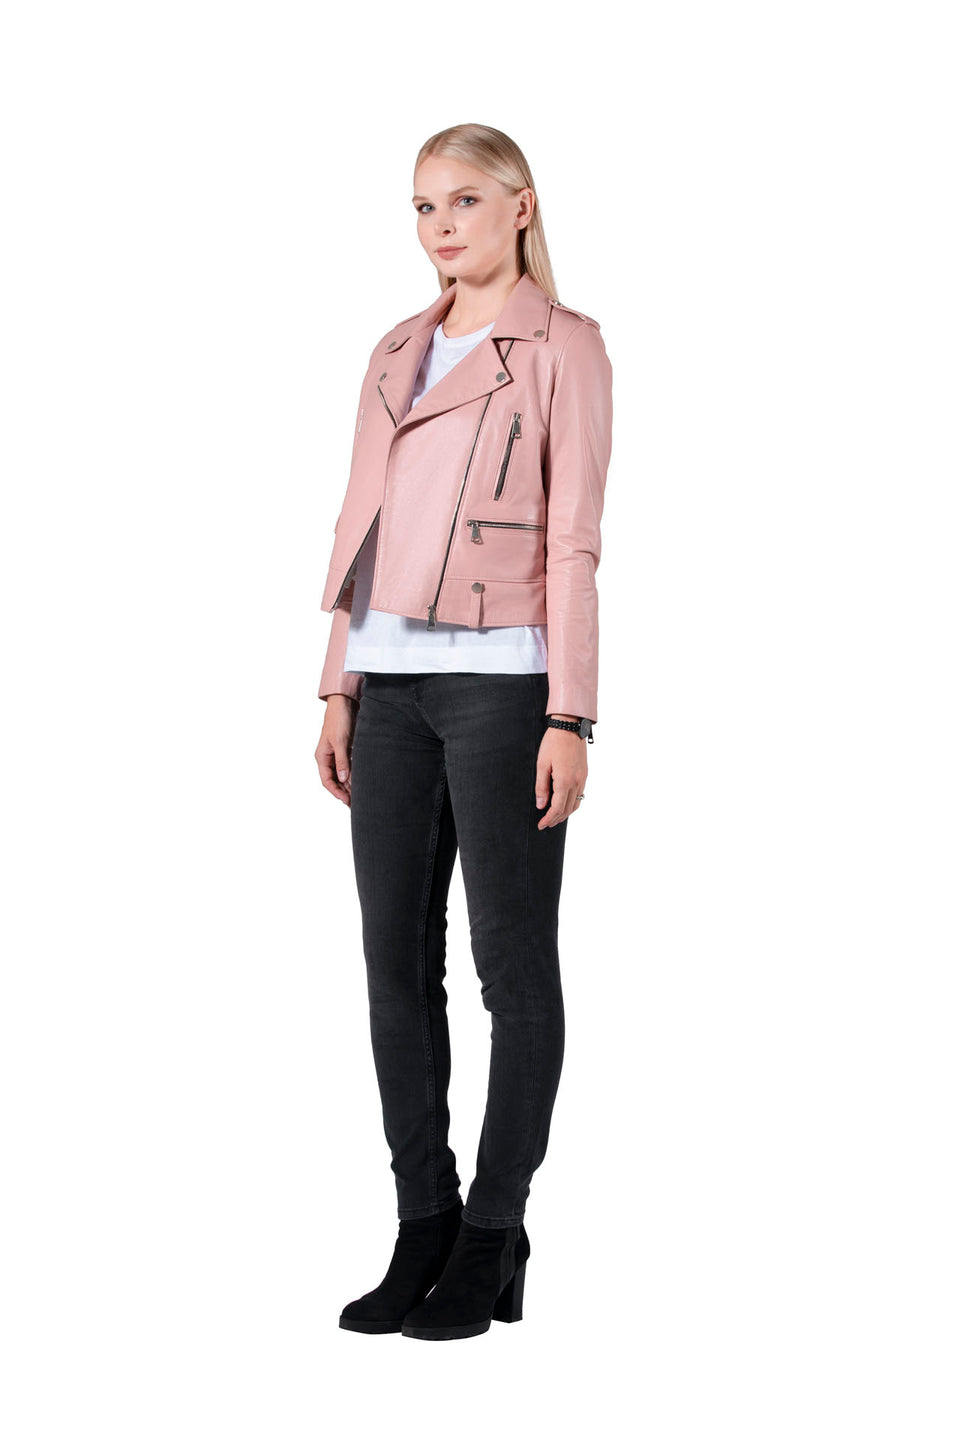 Lara - Women's Soft Nappa Genuine Leather Jacket Online